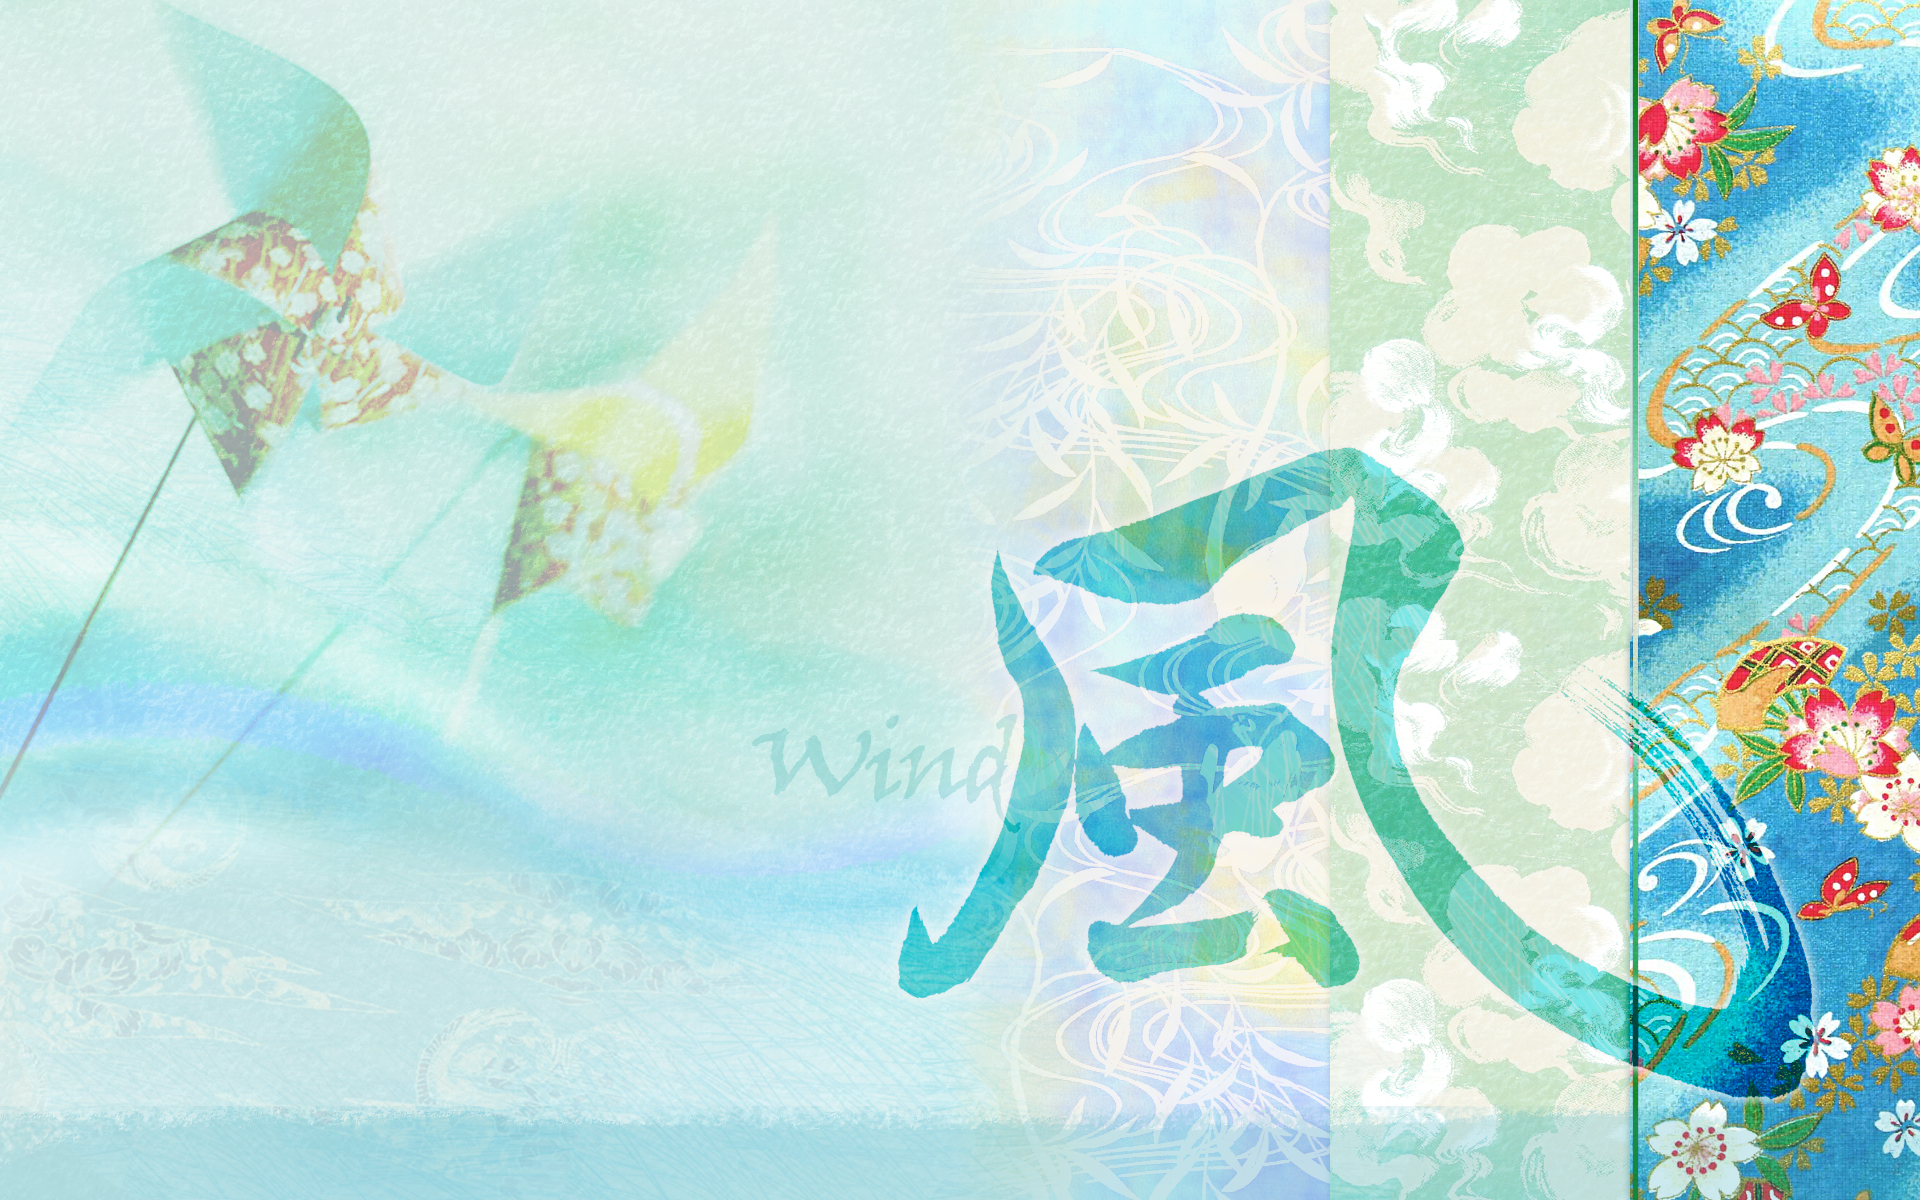 Free Wallpapers Galaxy S6 Wallpapers Inspired By: Beautiful Desktop Backgrounds Inspired By Japanese Kanji